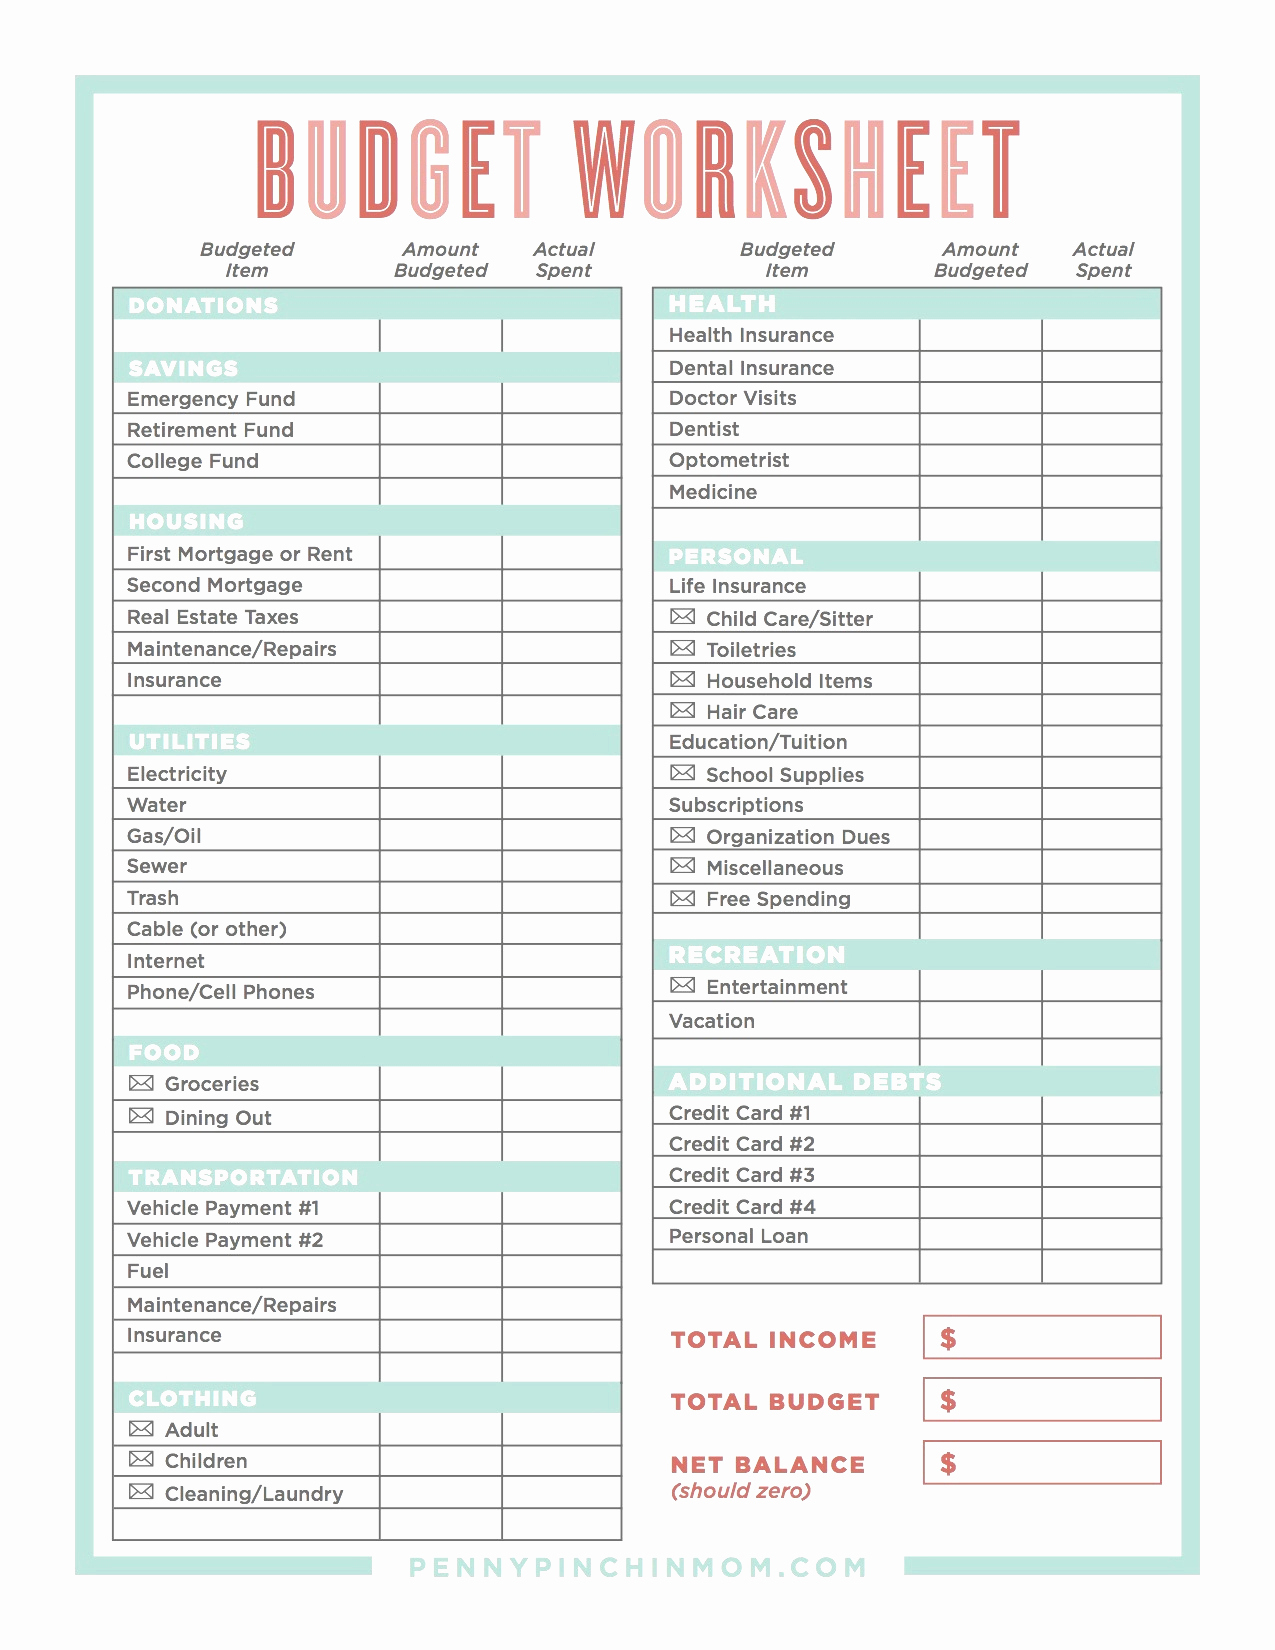 Monthly Budget Worksheet Dave Ramsey Lovely Bud Worksheet Dave Within Get Out Of Debt Budget Spreadsheet